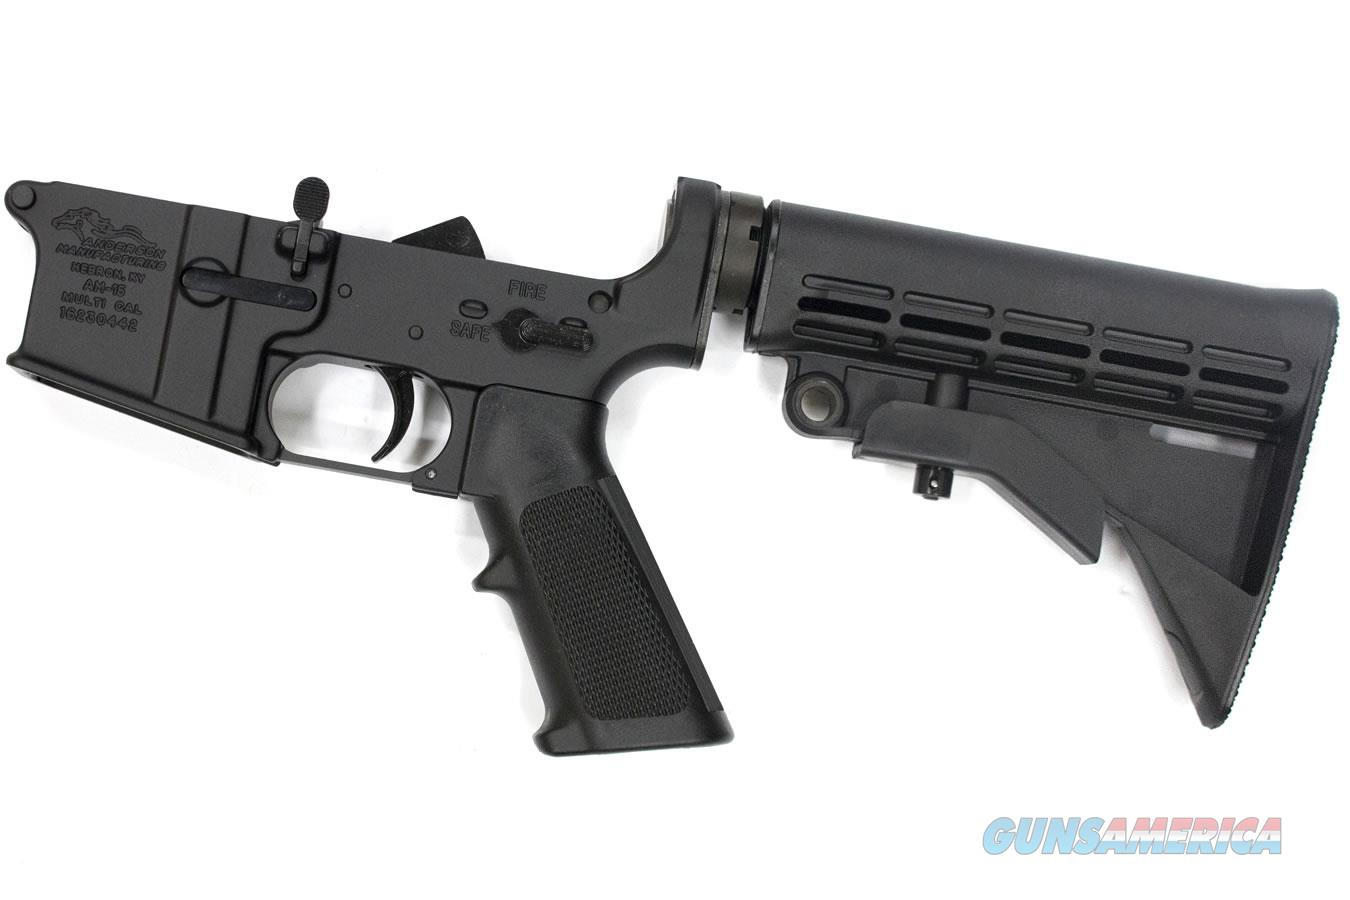 Anderson Complete AR15 Multi Cal Lower, Open Trigger  Guns > Rifles > AR-15 Rifles - Small Manufacturers > Lower Only